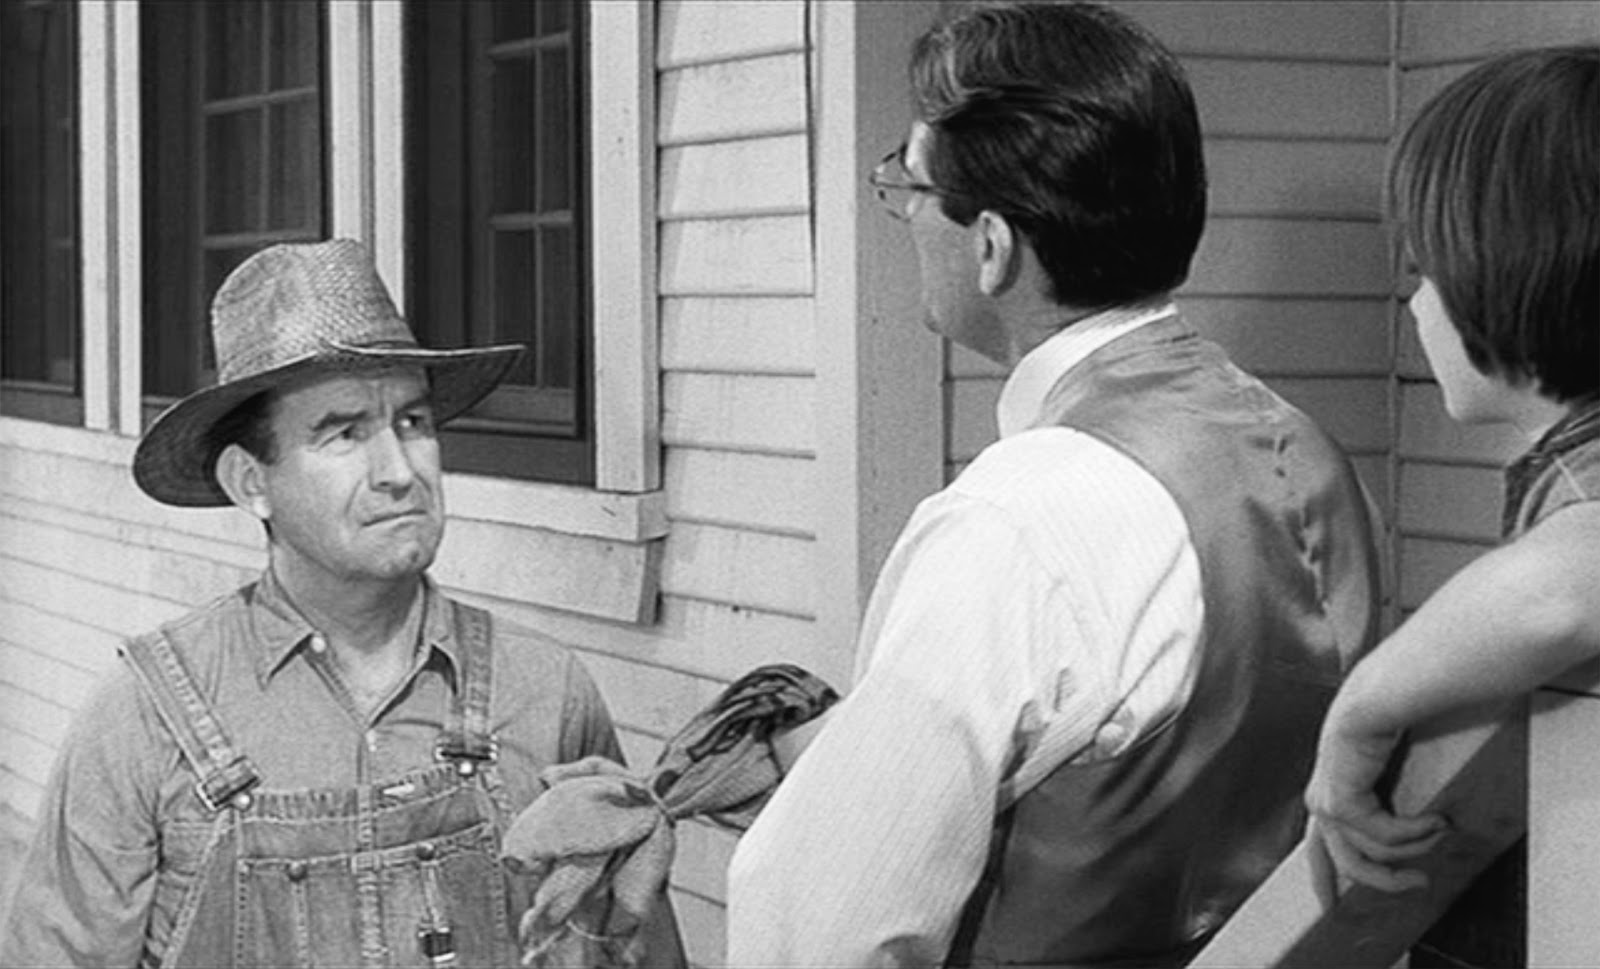 walter cunningham to kill a mockingbird It will assist you in keeping track of the to kill a mockingbird characters as you read slide 2 of 3 the finch family  walter cunningham, sr and jr.